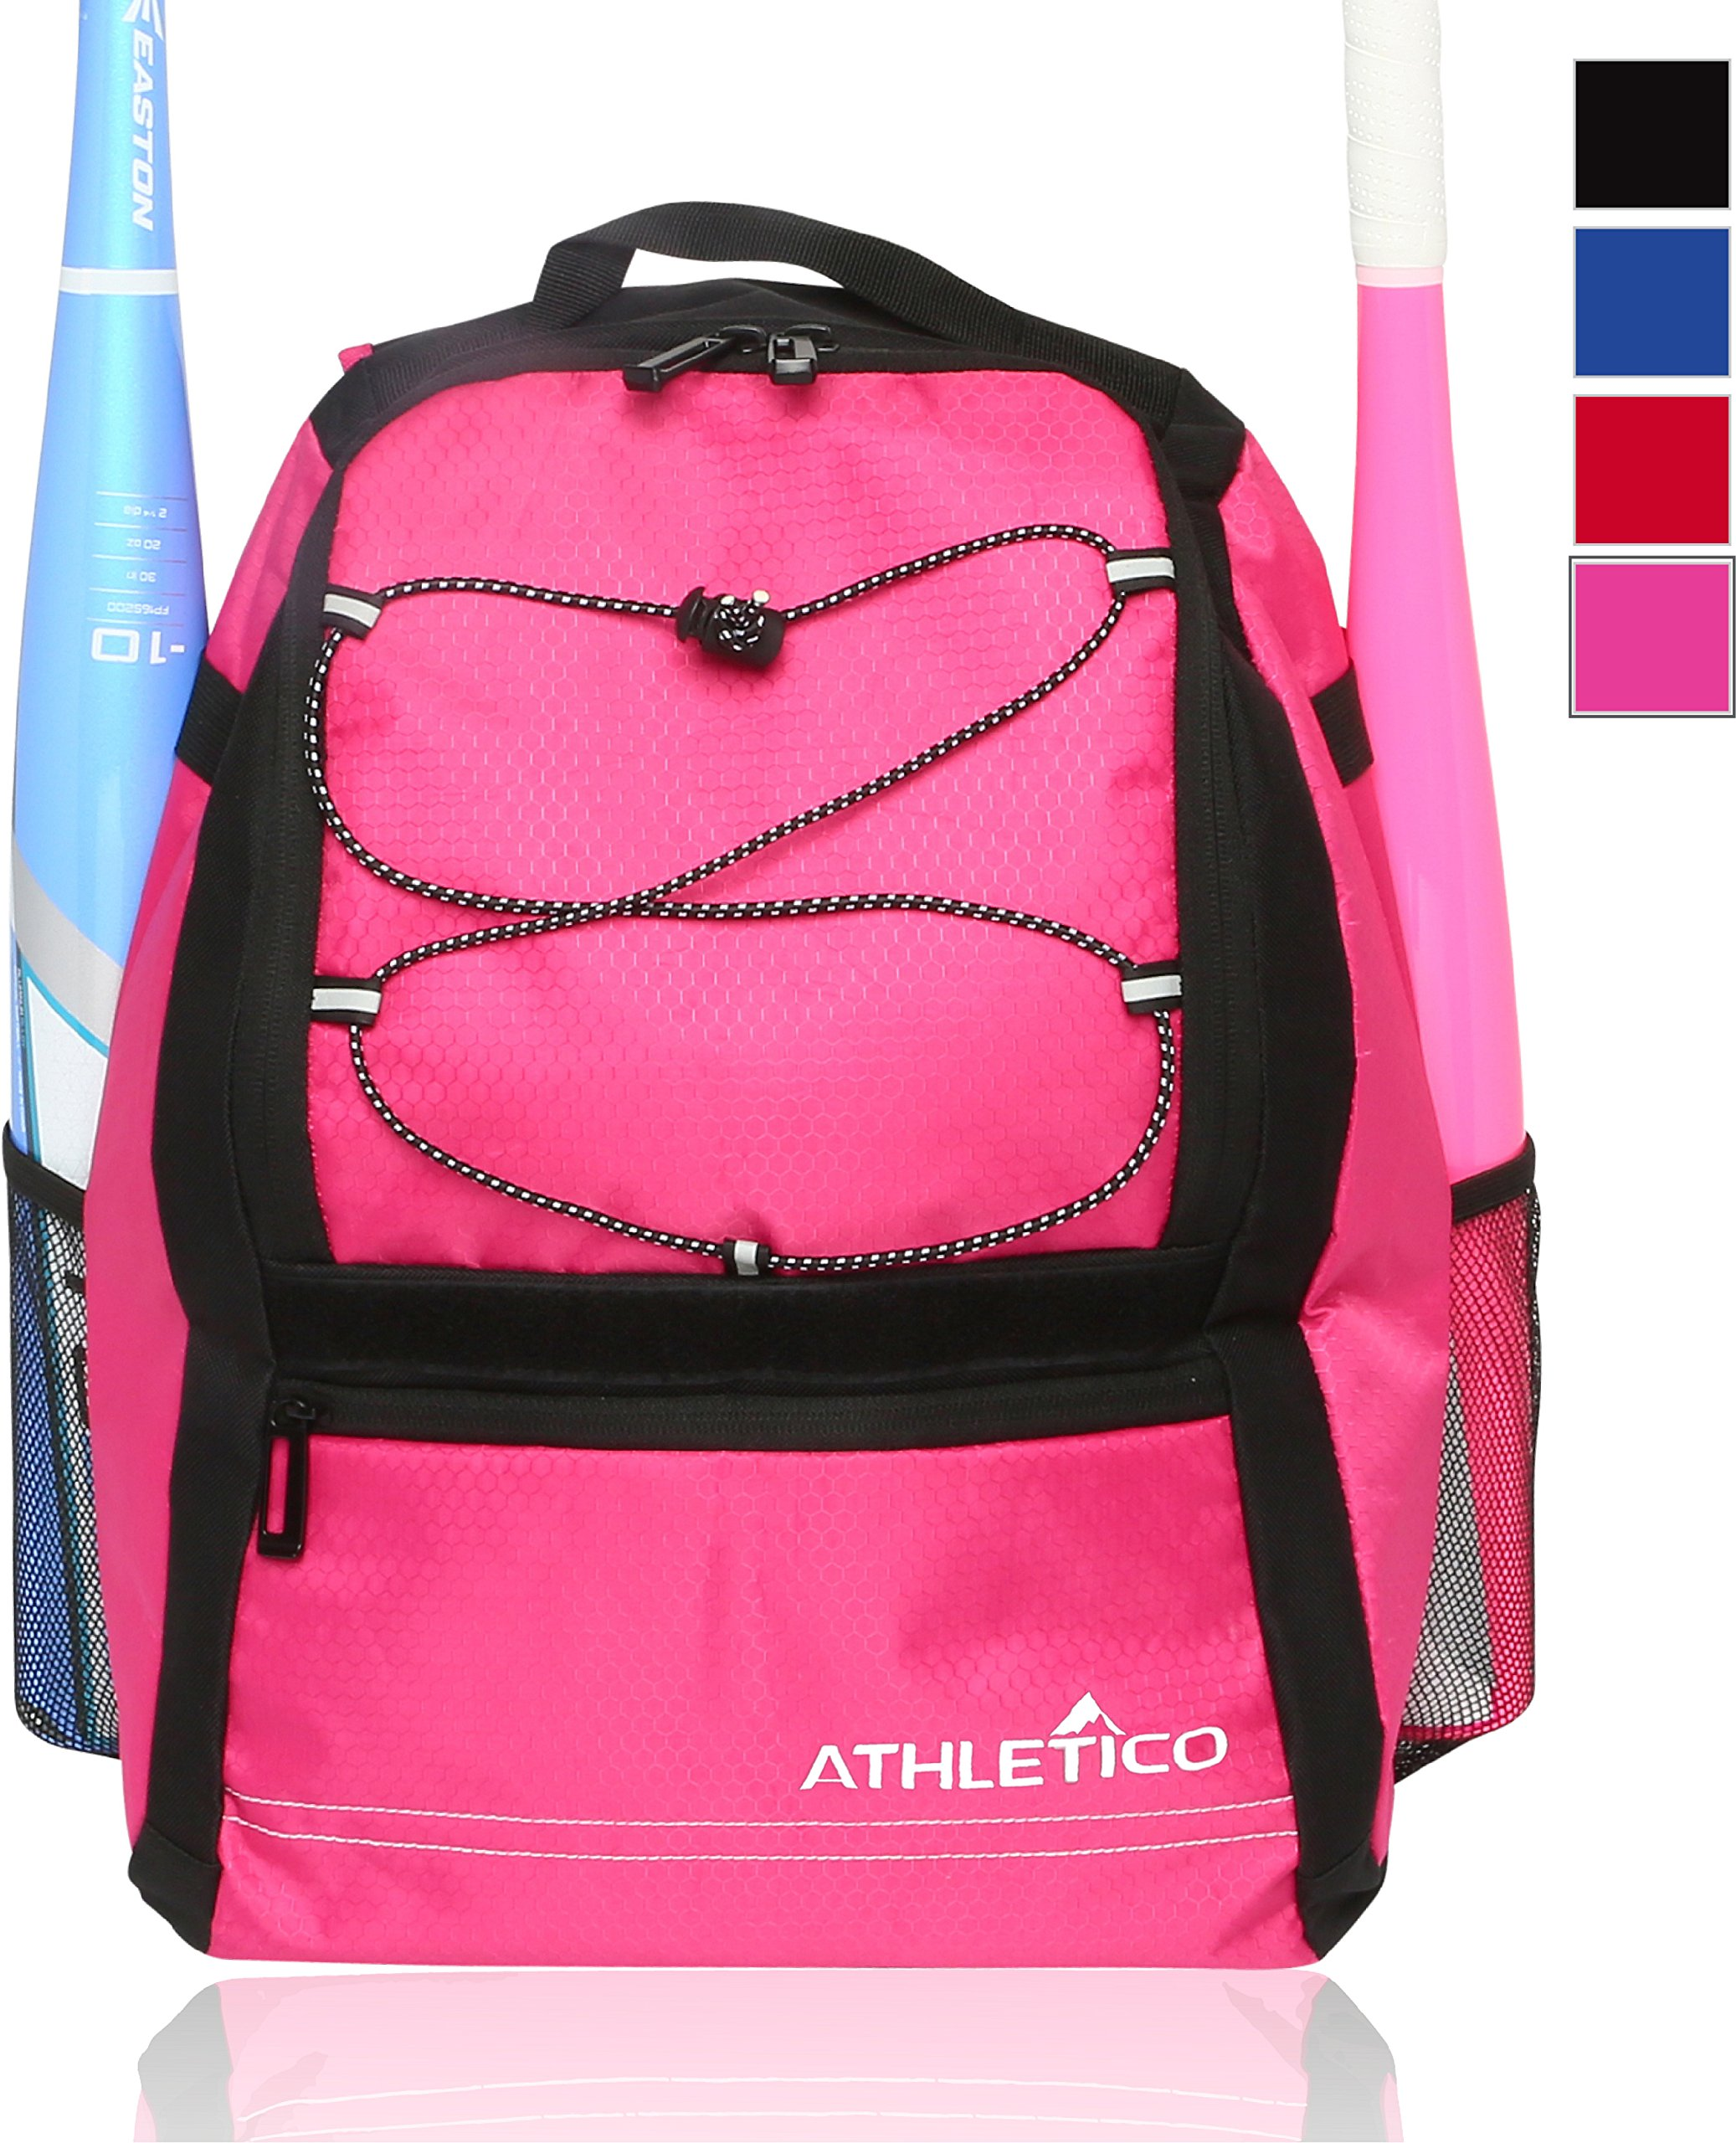 Athletico Youth Baseball Bag - Bat Backpack for Baseball, T-Ball & Softball Equipment & Gear | Holds Bat, Helmet, Glove | Fence Hook (Pink) by Athletico